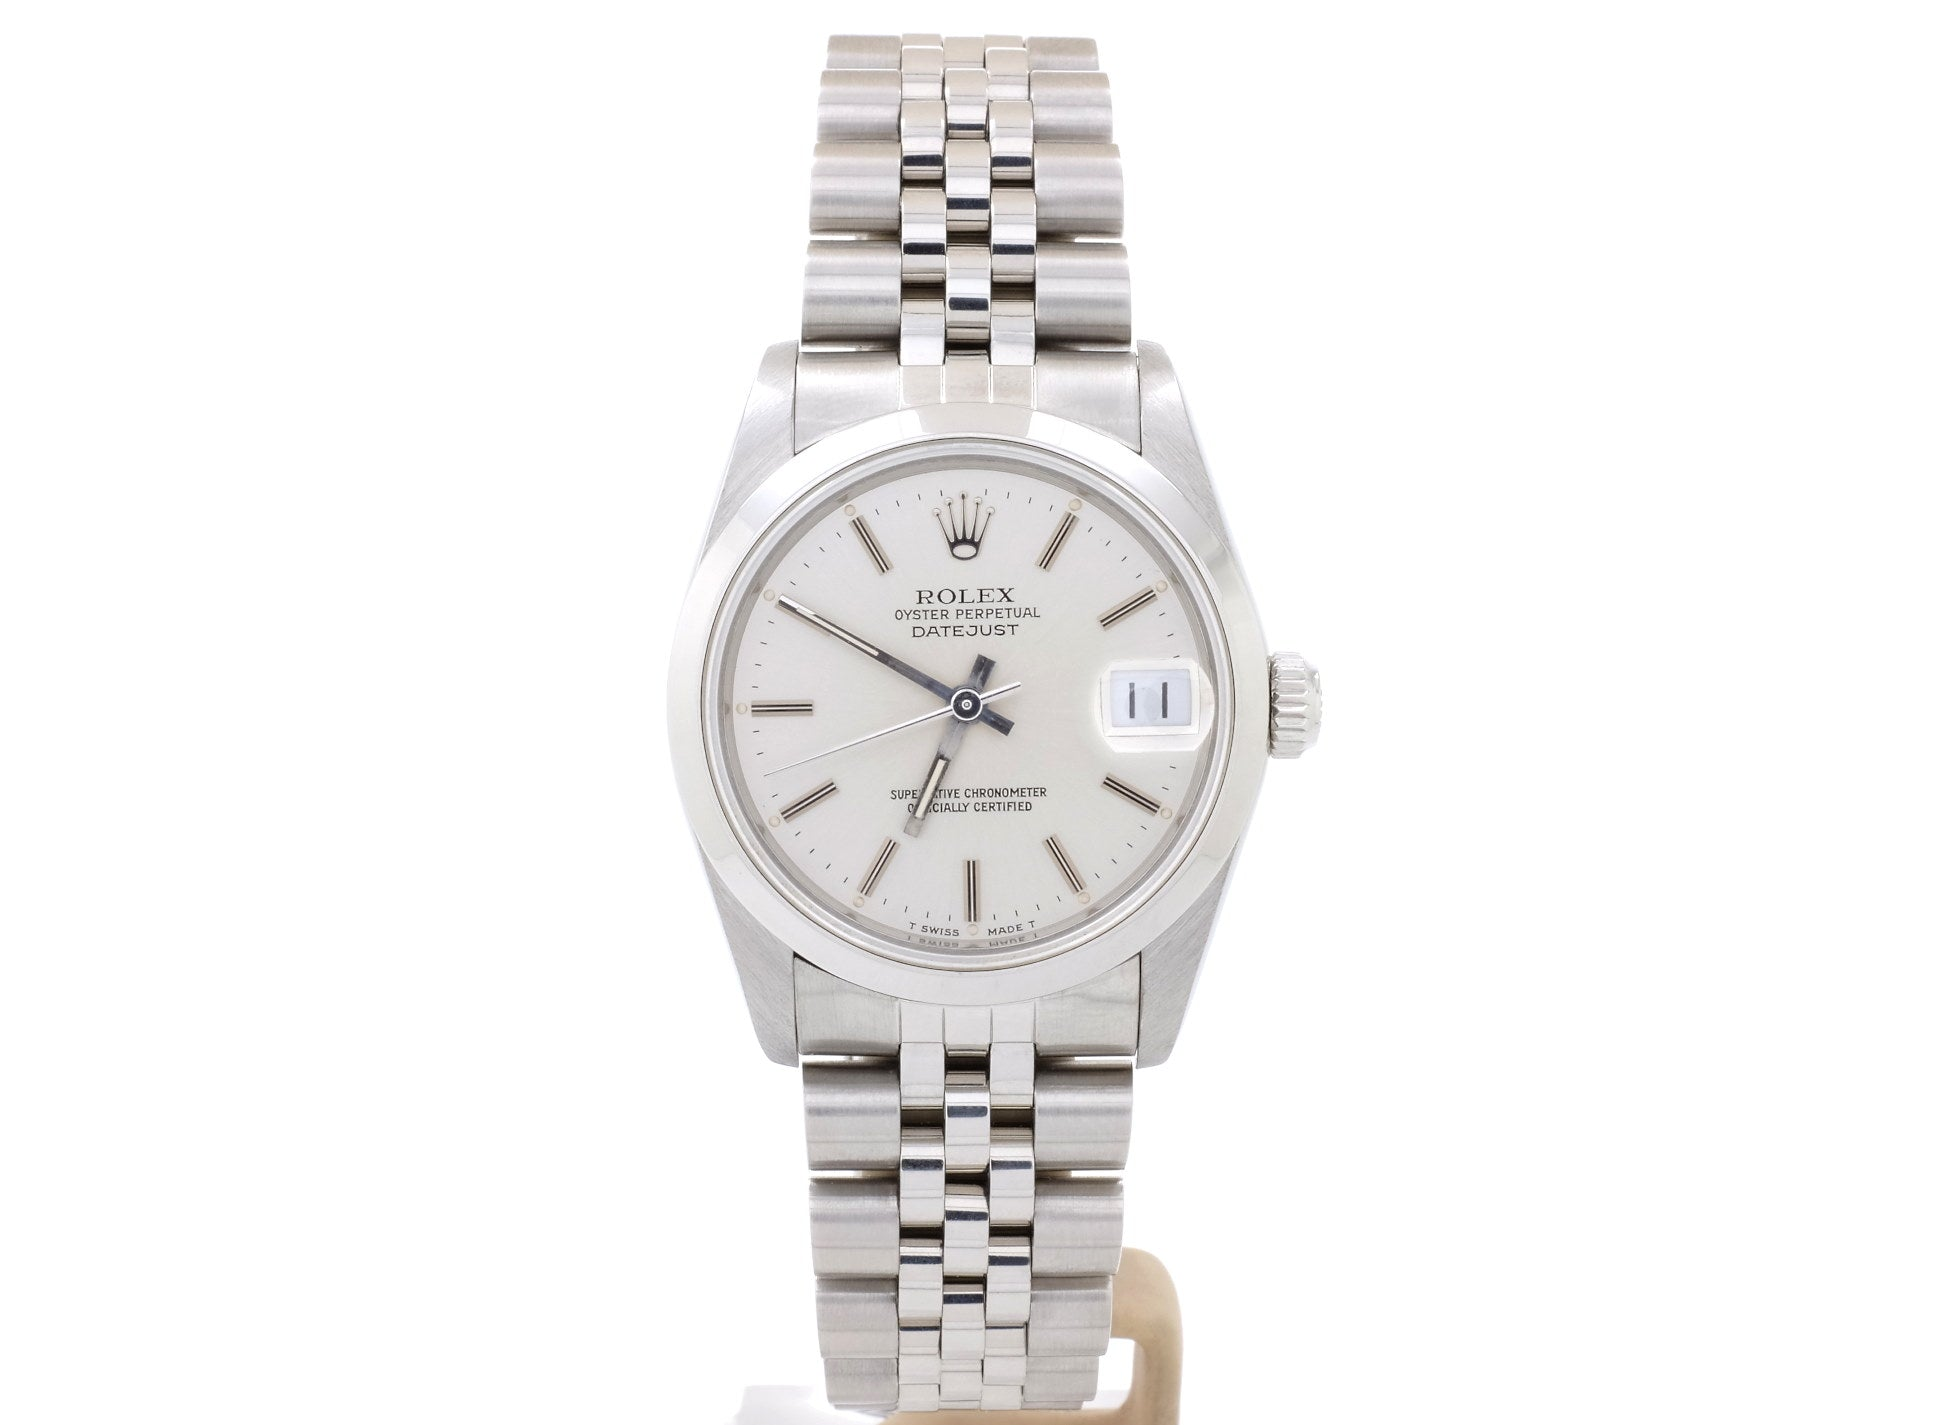 Excellent-Condition Ladies' Mid-Size Rolex DATEJUST 68240 with Silver Dial